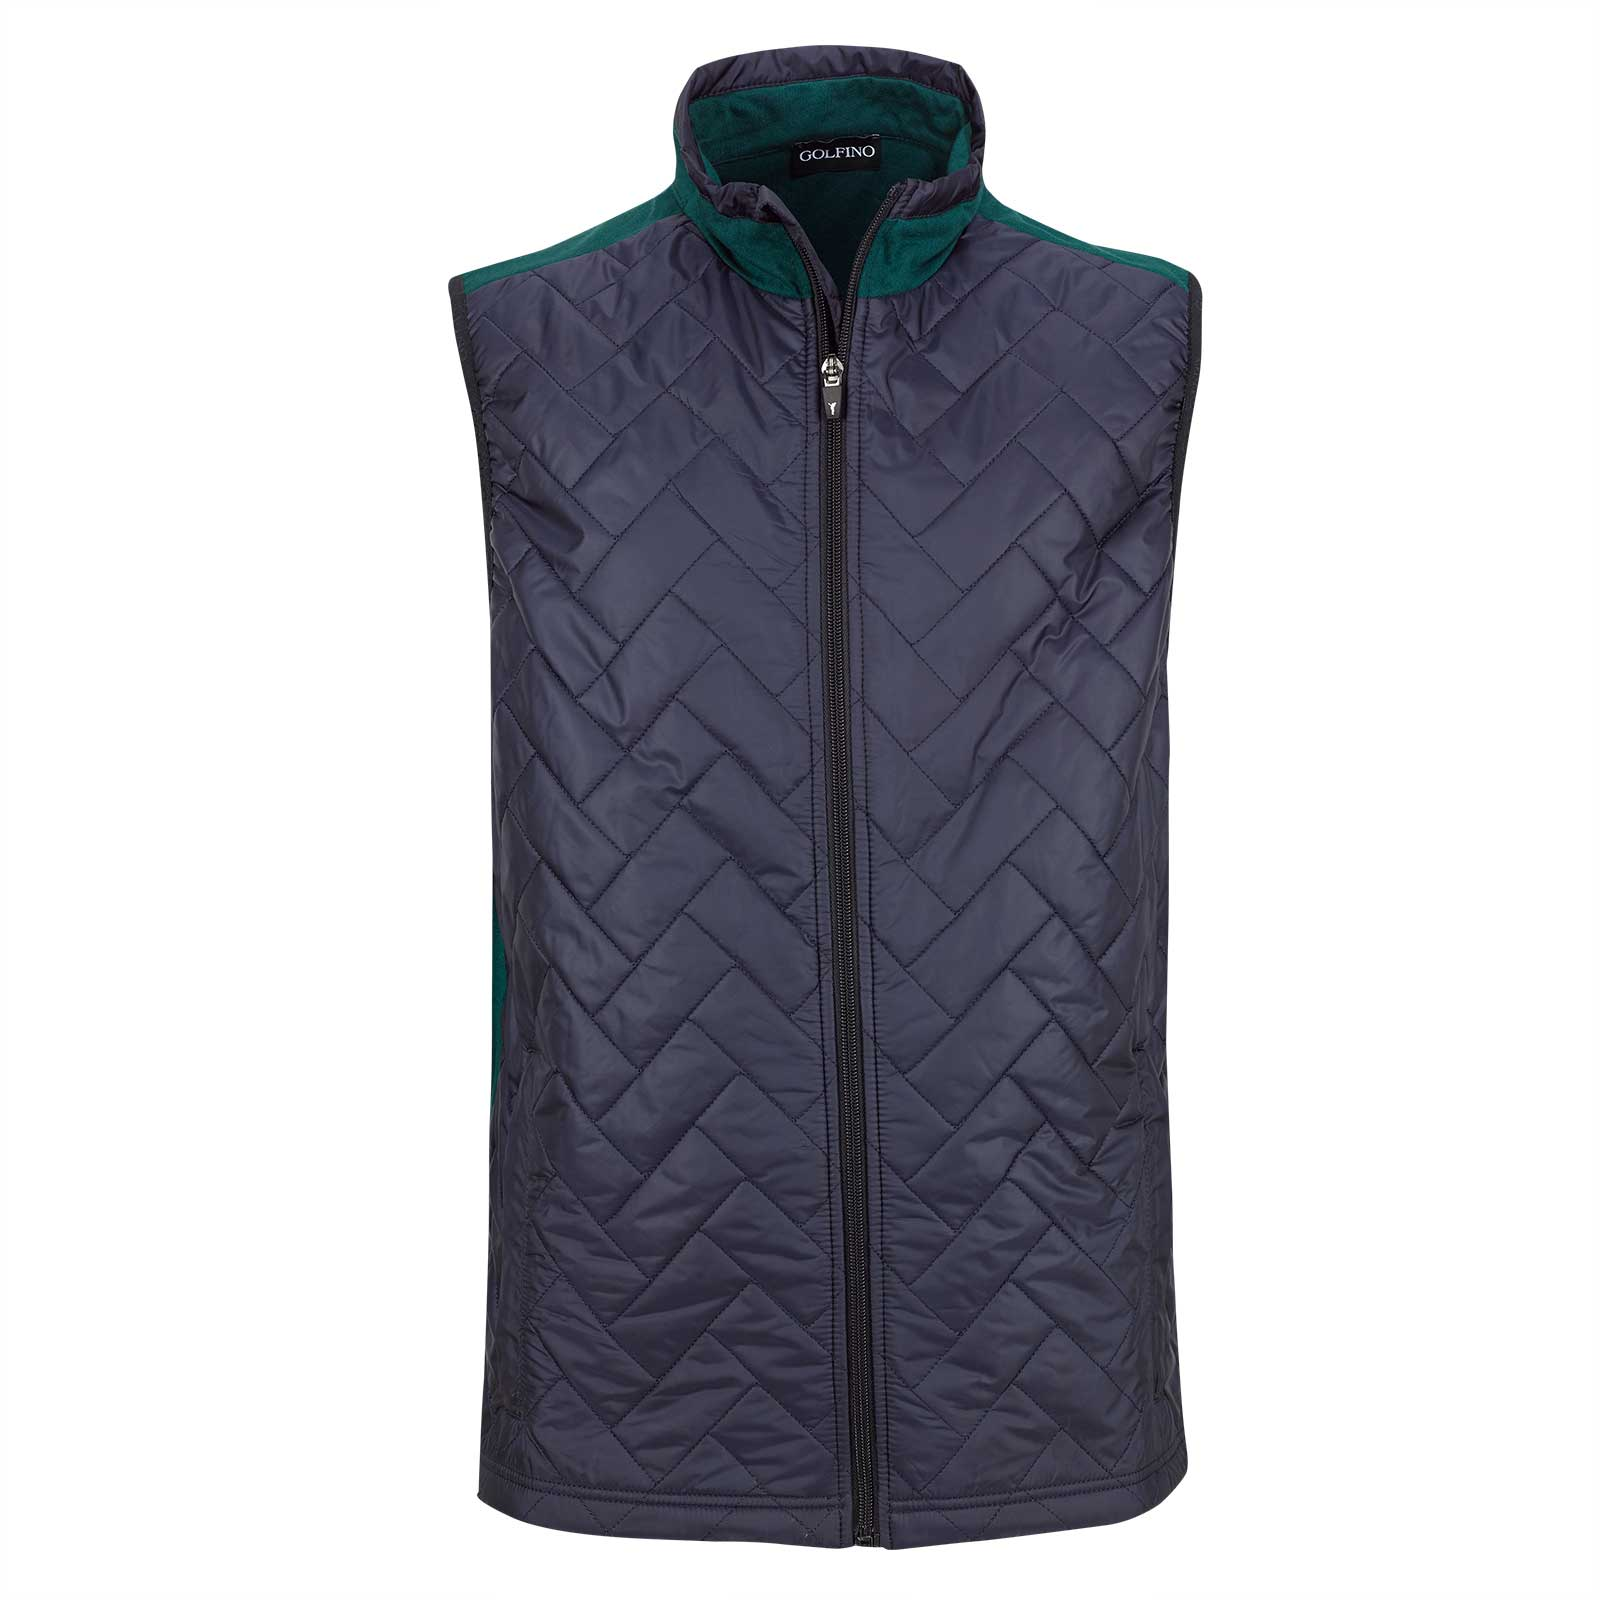 Men's wind protection golf waistcoat with padded front